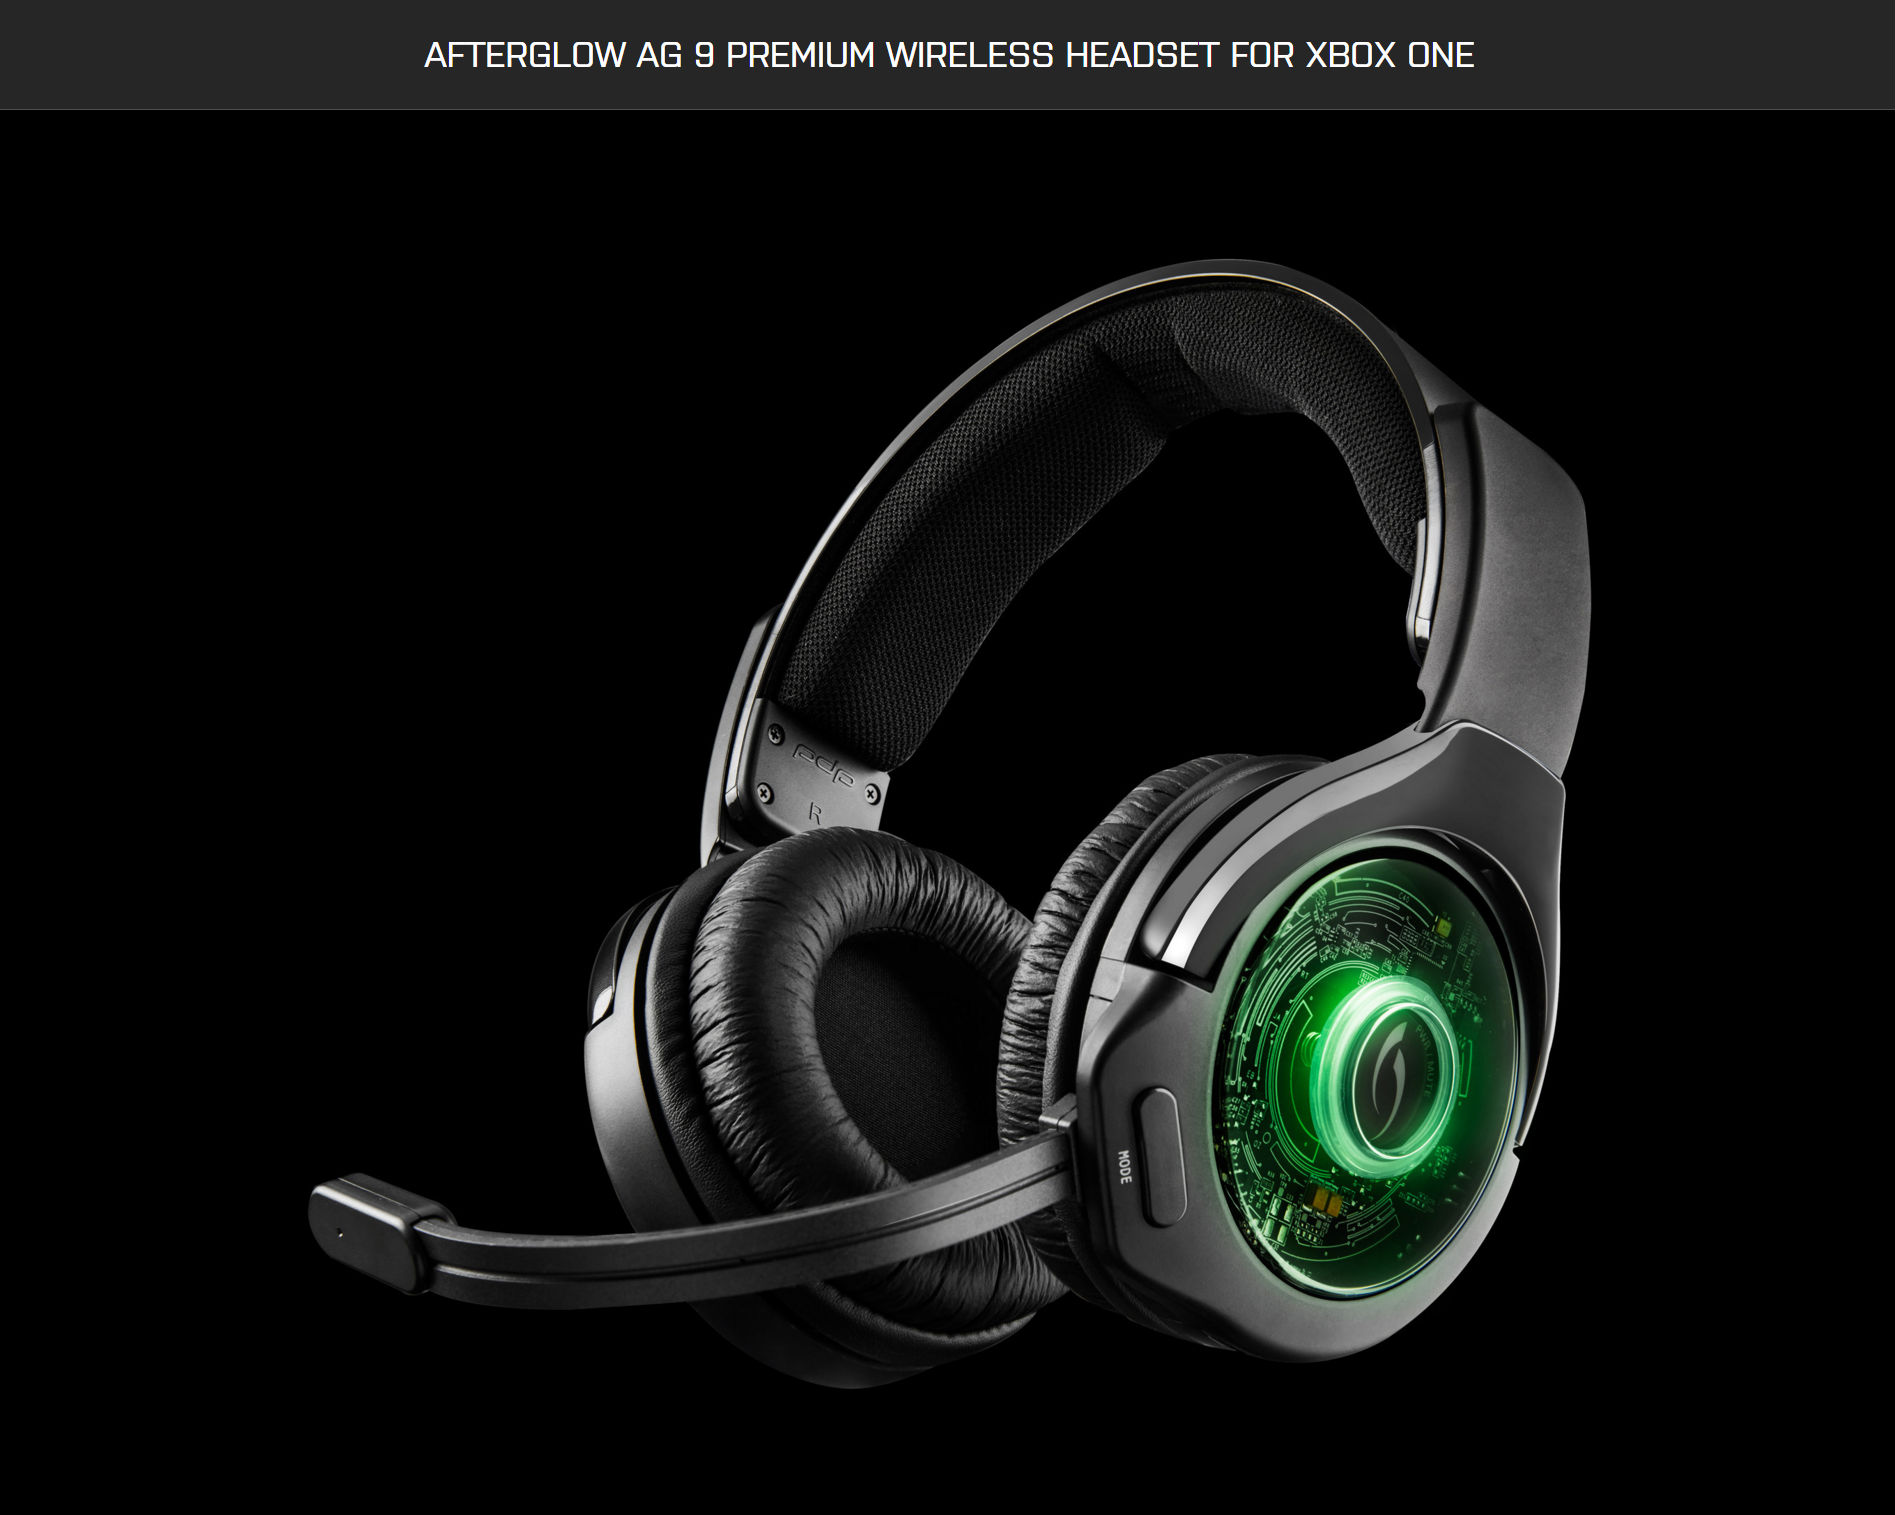 9d2c3e5398a Review: PDP AfterGlow AG-9 XBox One Wireless Stereo Headset ...